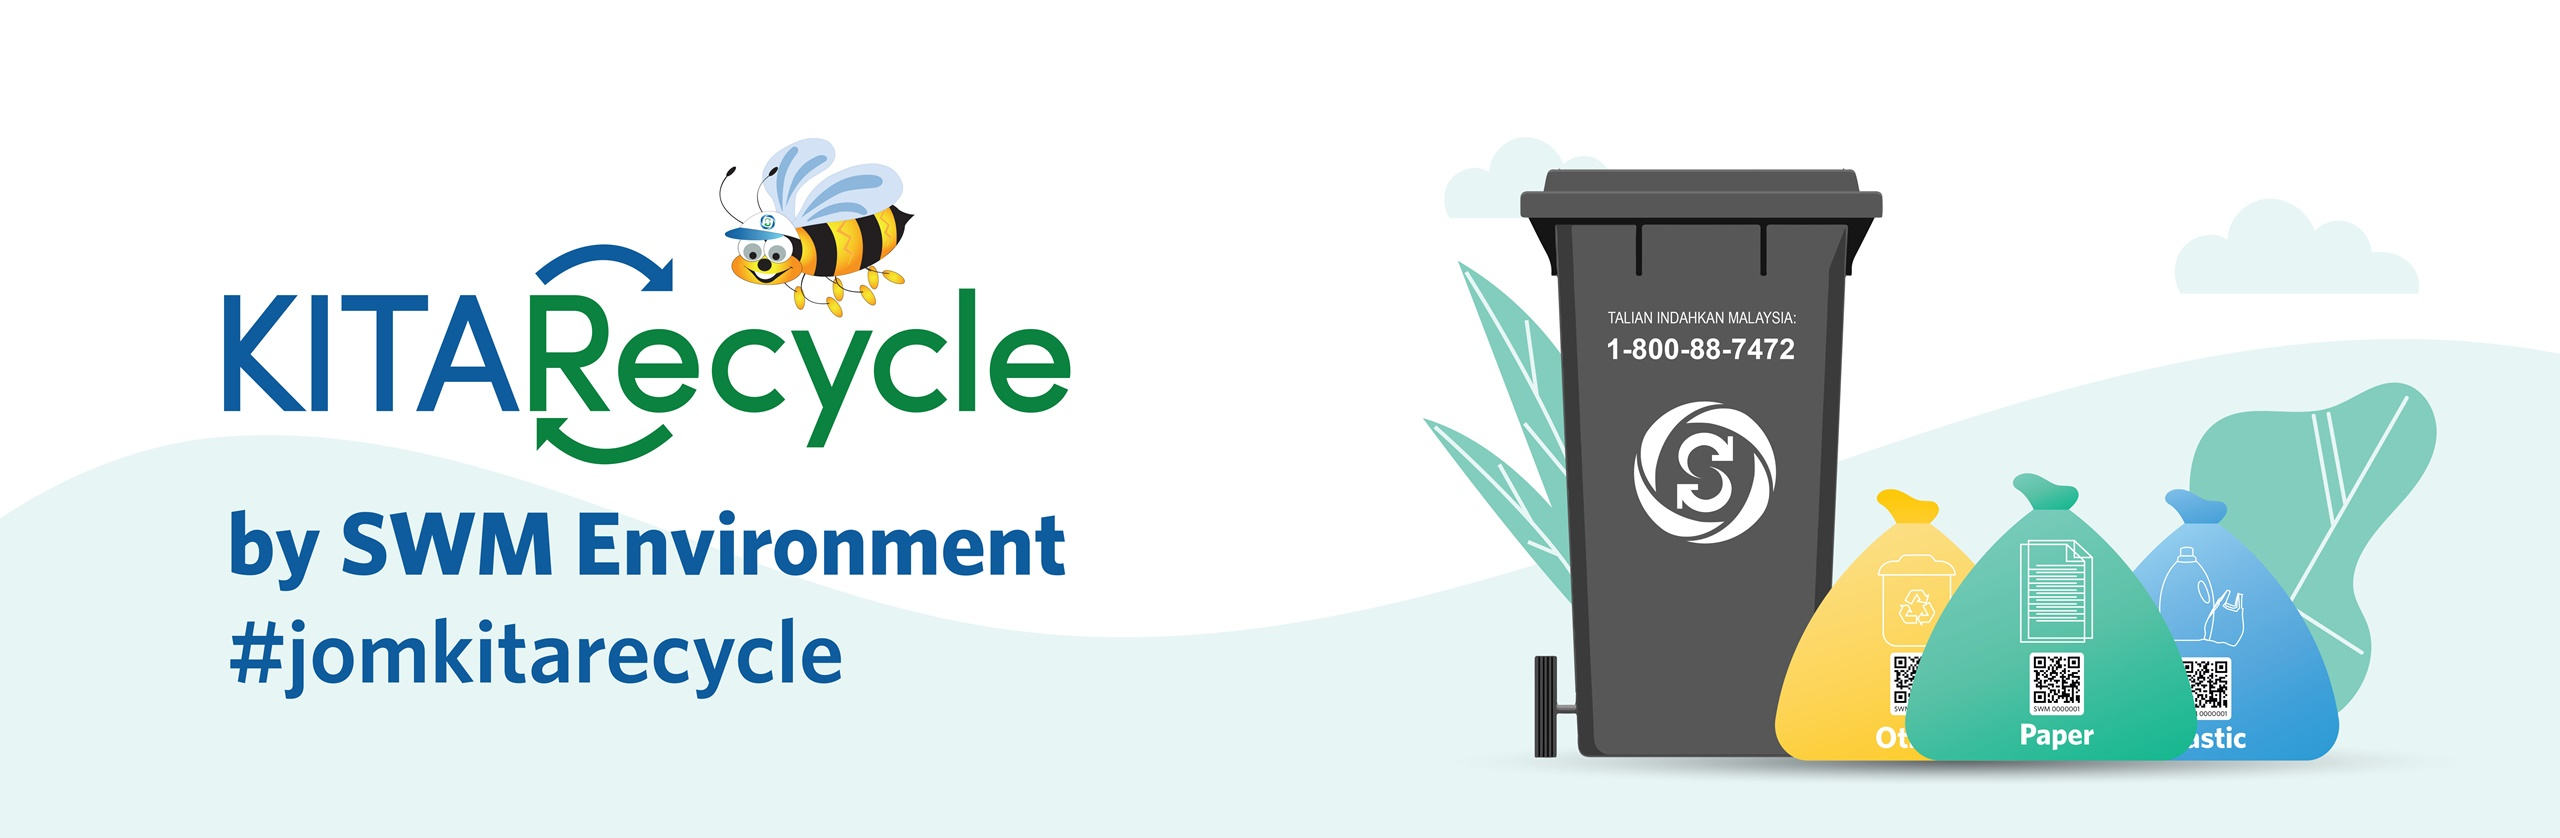 First page - KITARecycle Landing page